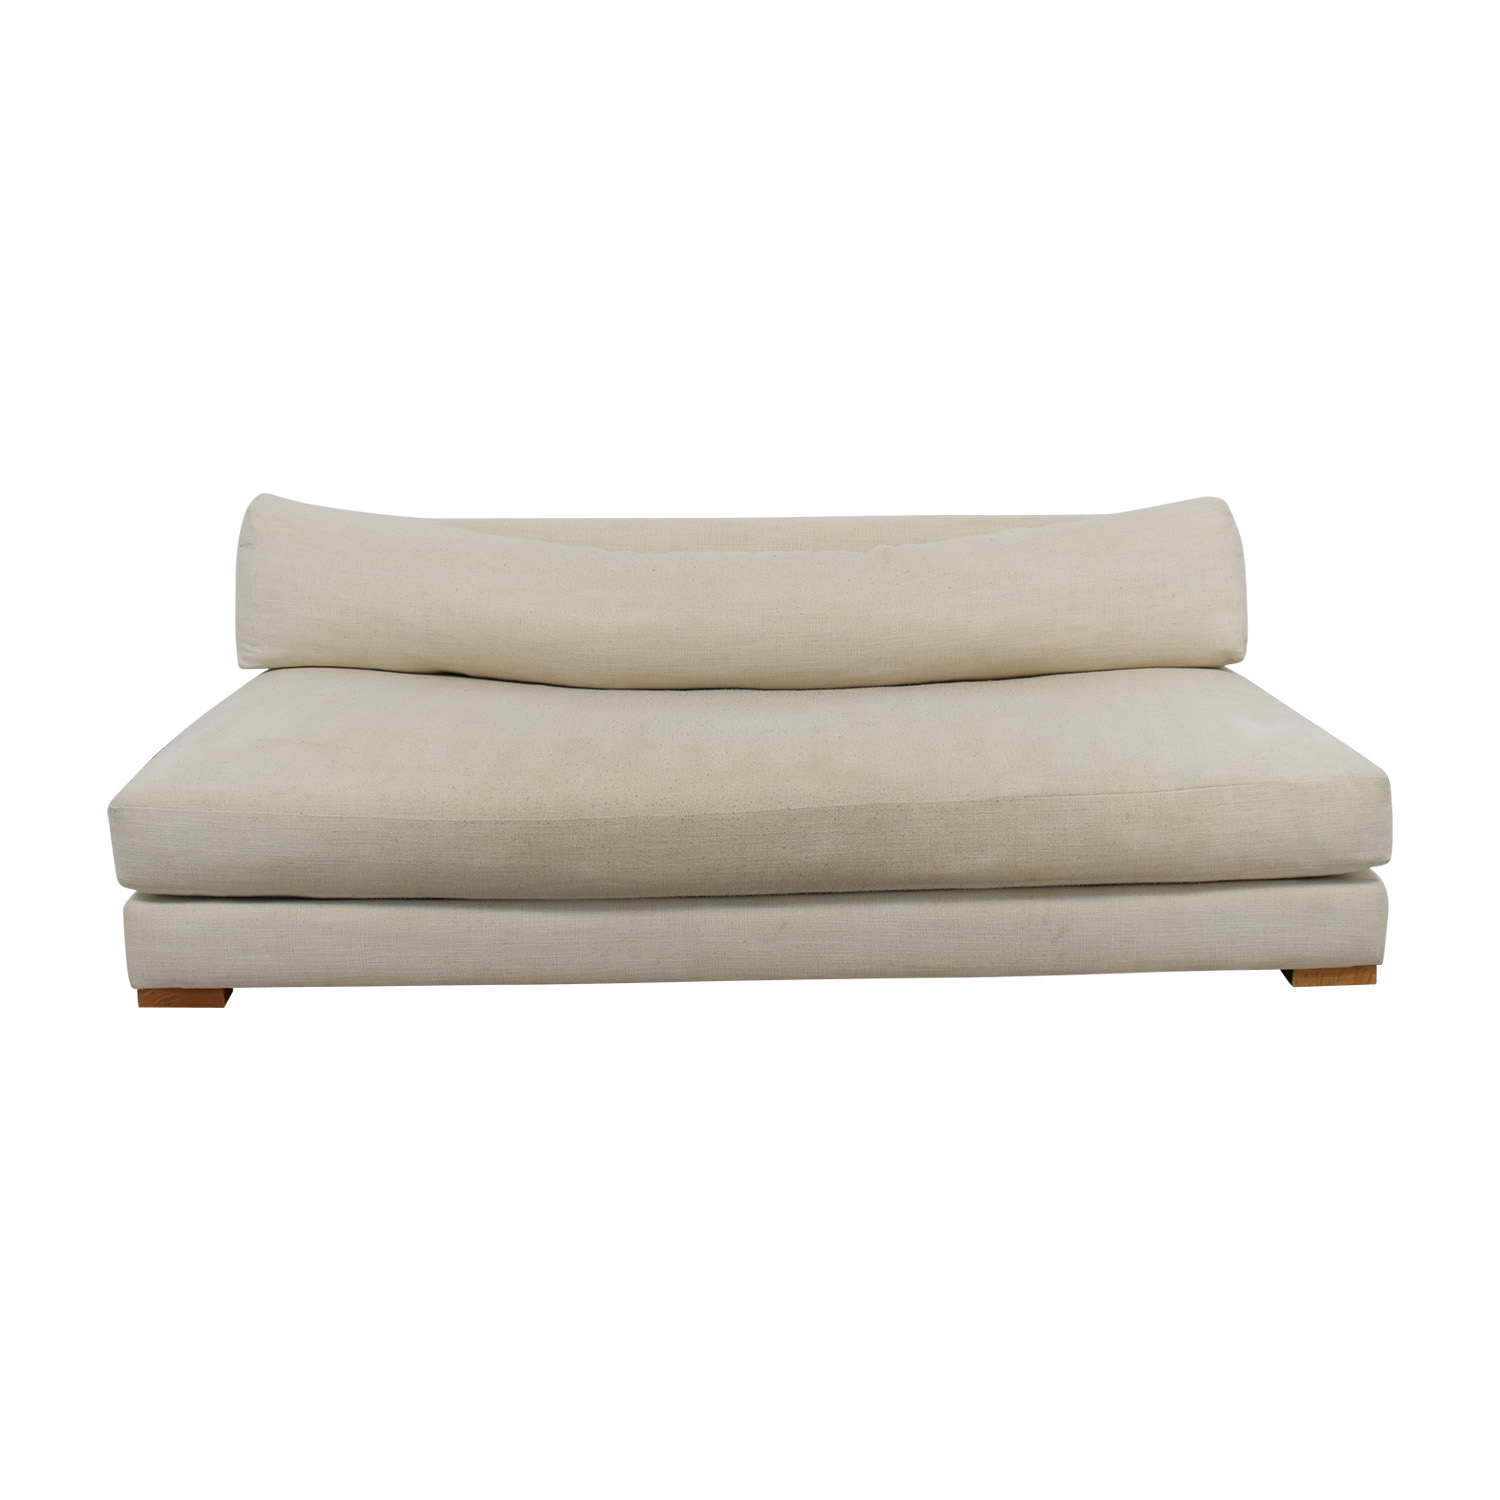 Single Cushion Sofas Sofa With One Cushion On Seat Single Sofas Thesofa